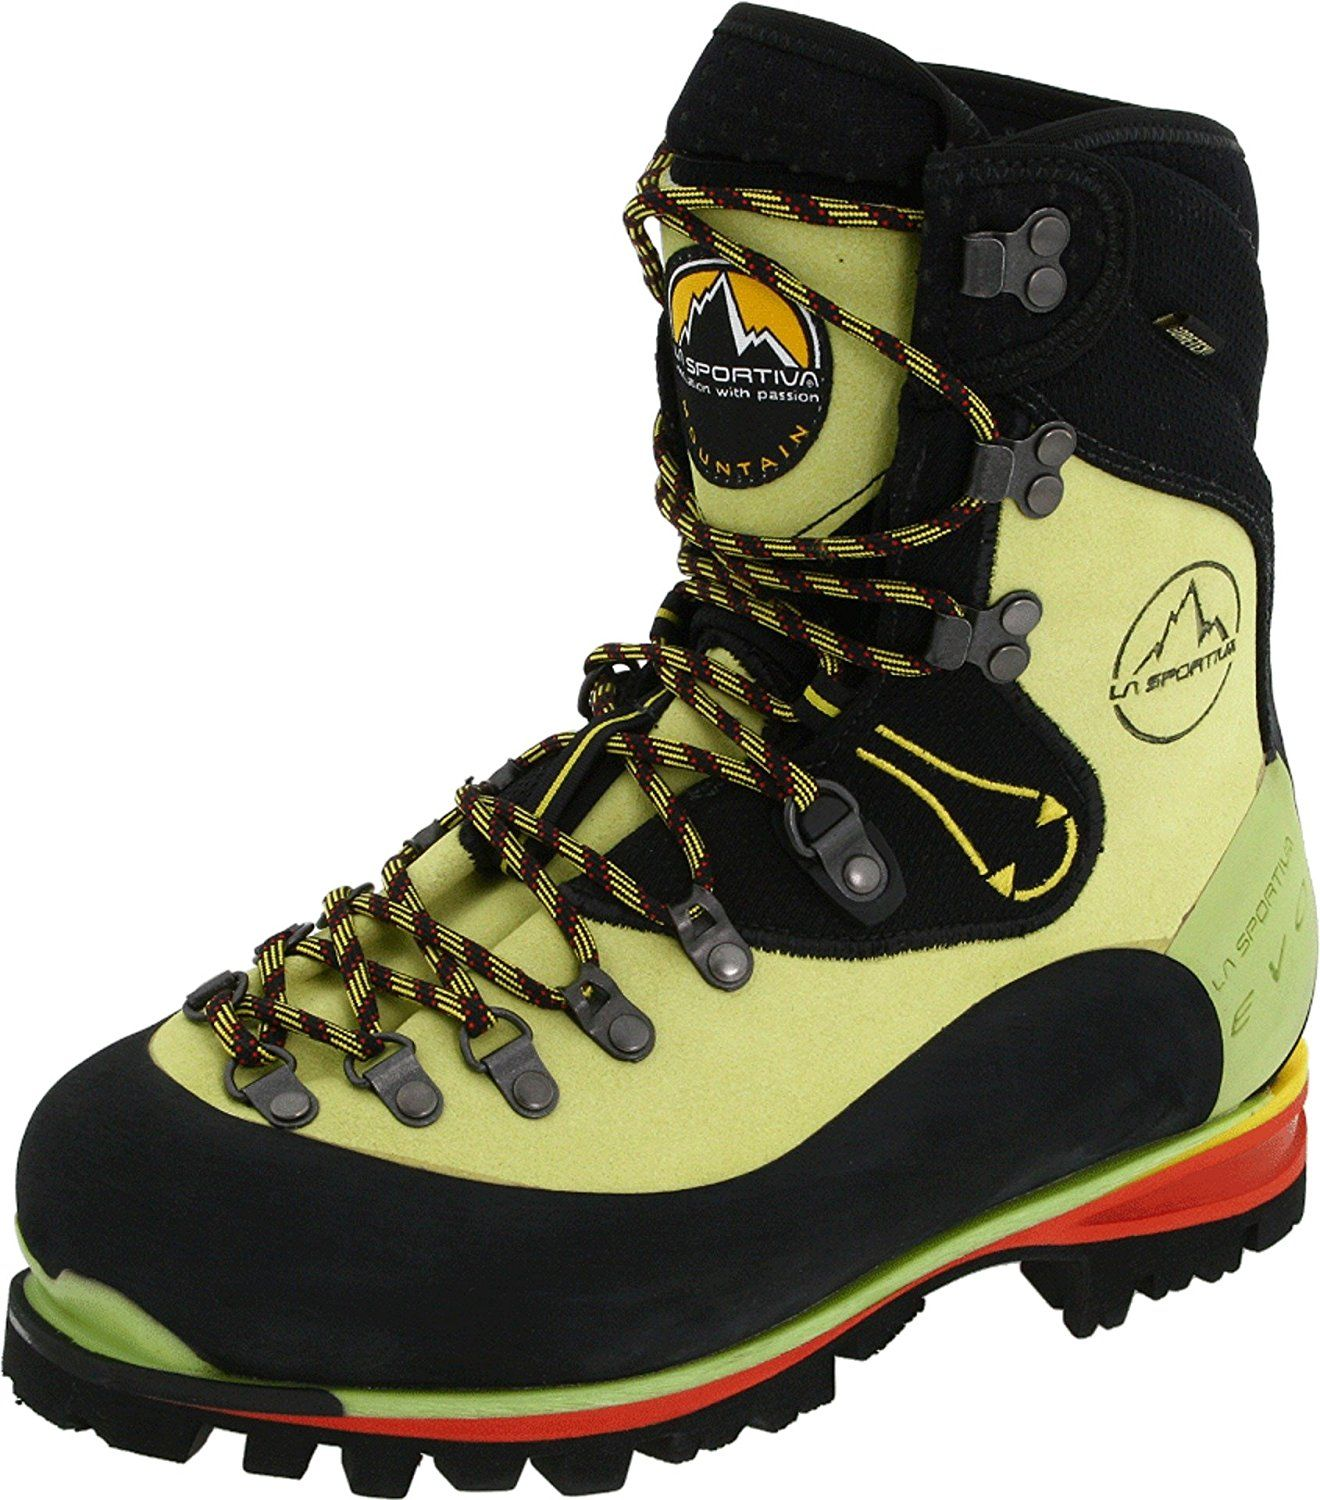 e37219f7f4414 La Sportiva Nepal EVO GTX Boot - Women's >>> For more information ...